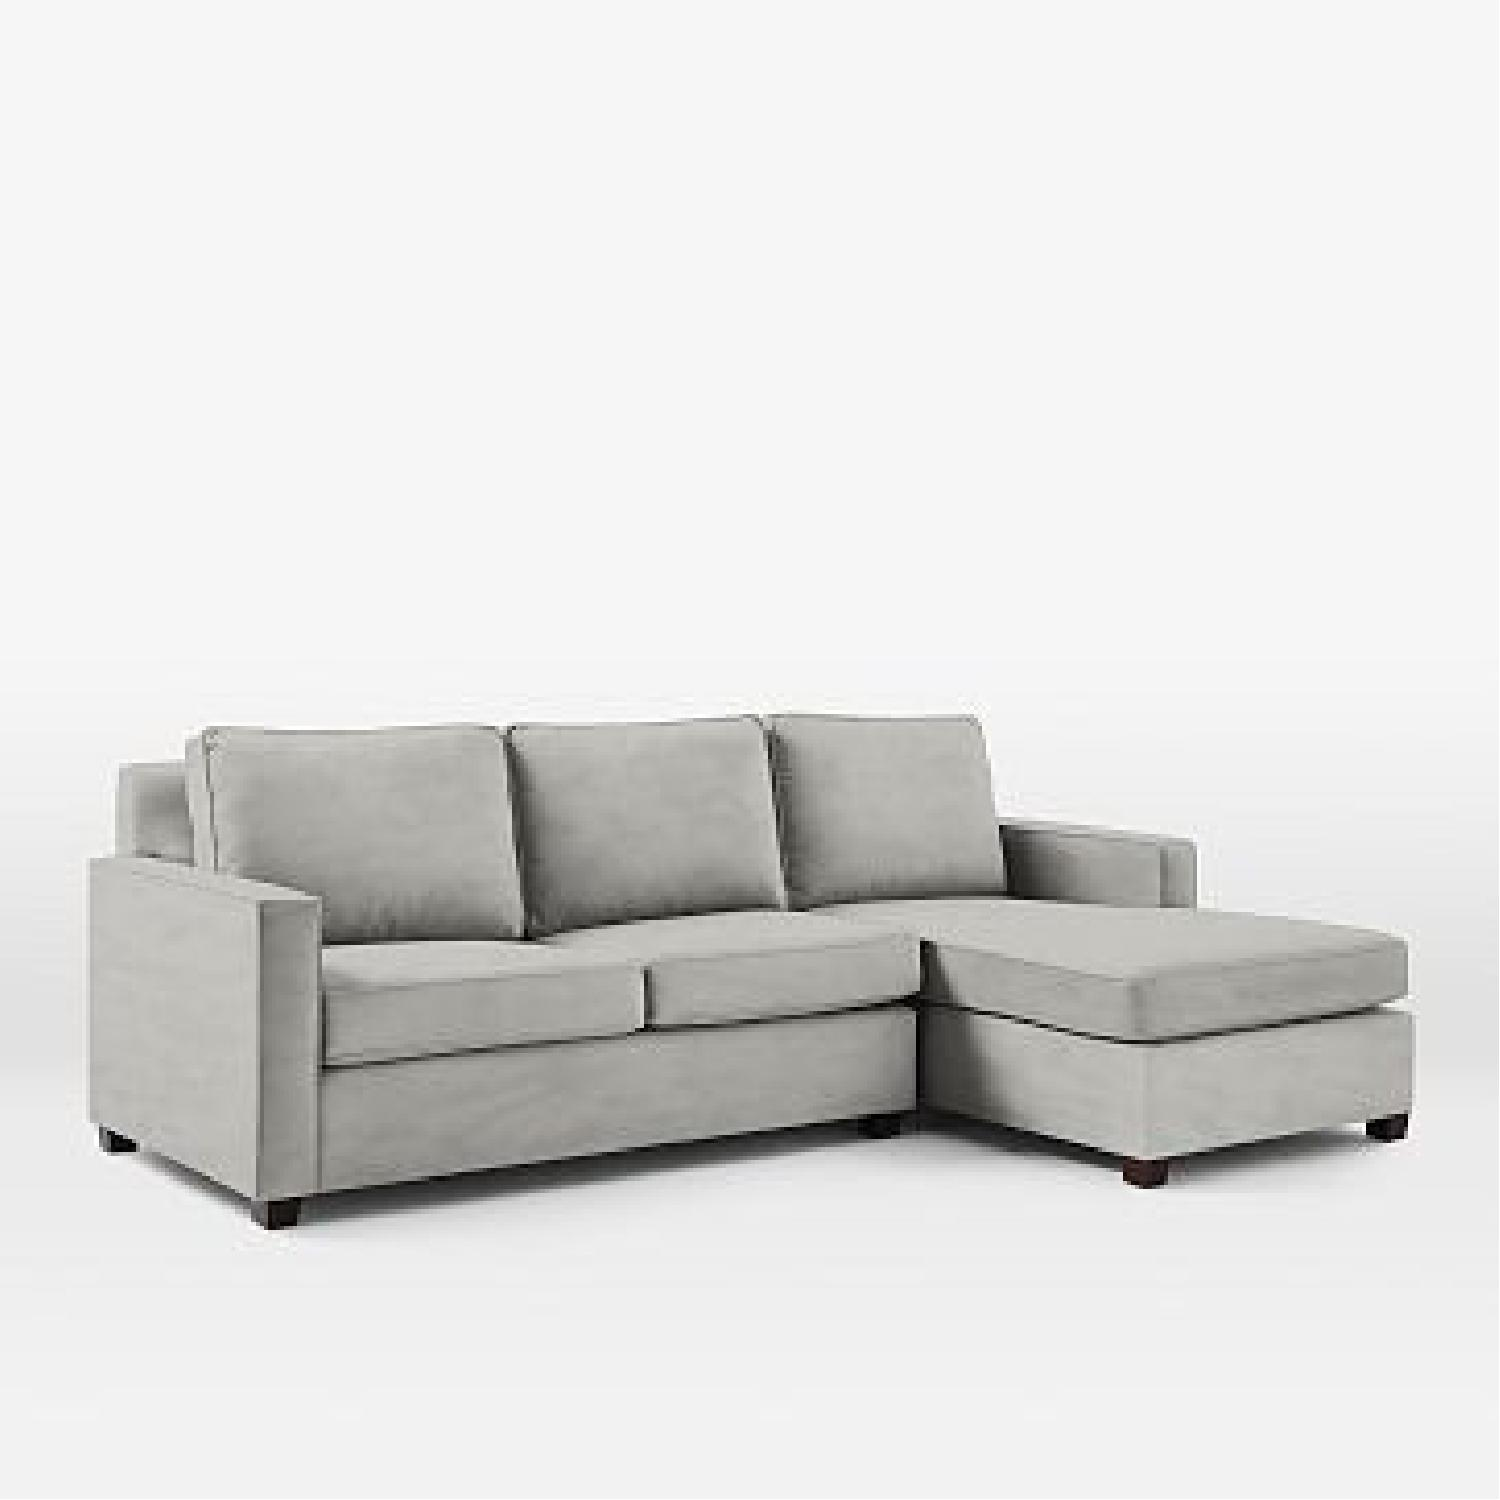 West Elm Henry 2-Piece Chaise Sectional Sofa - image-6